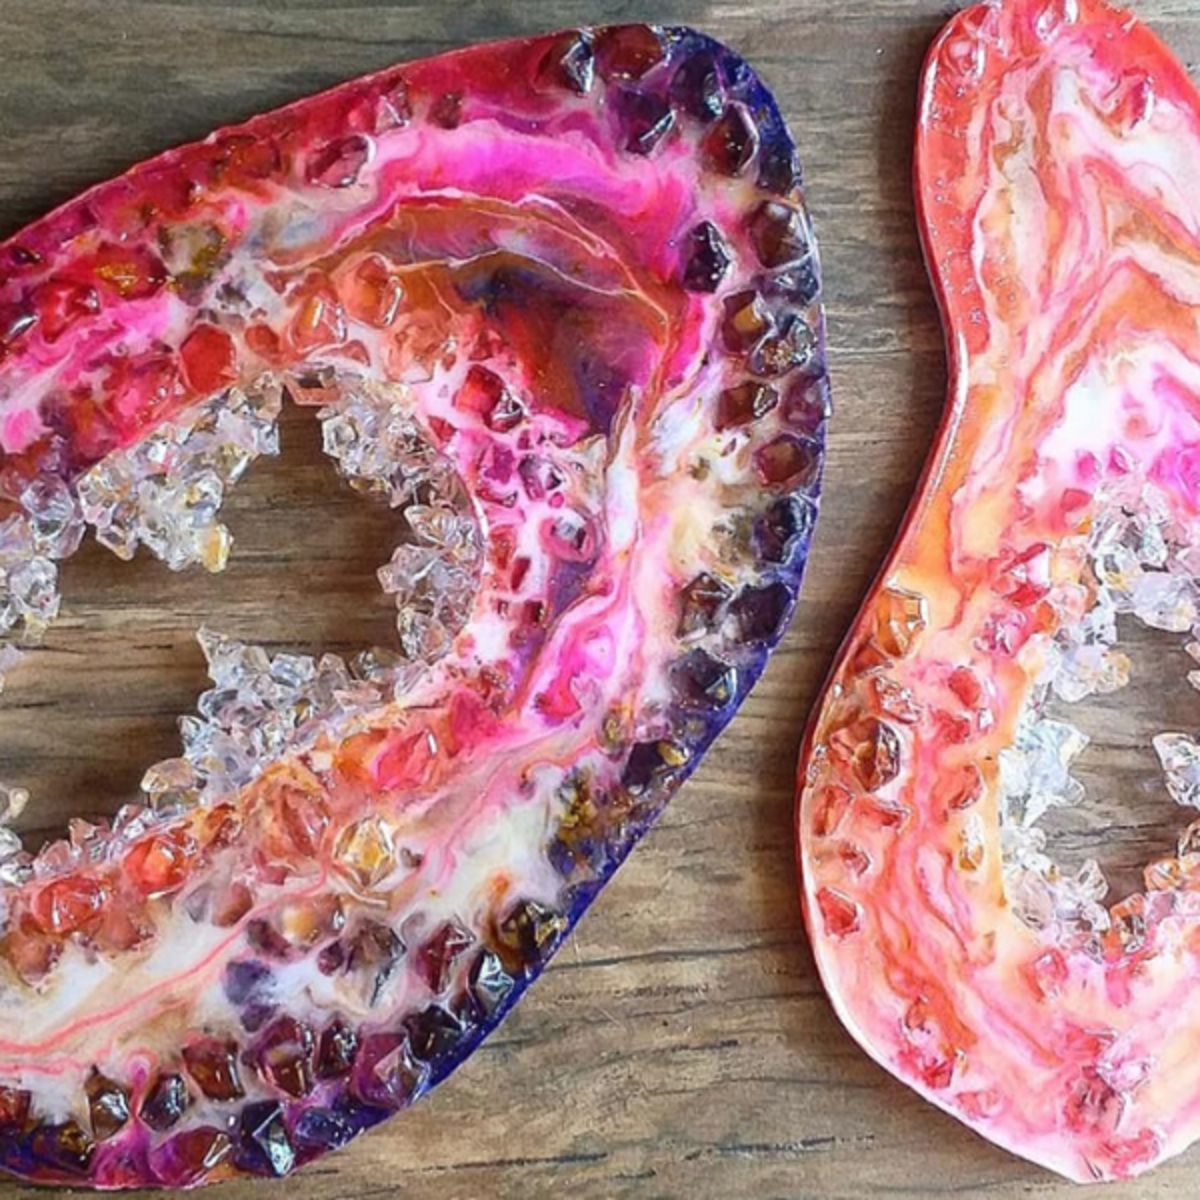 Add the plastic crystals to the center of the geode.